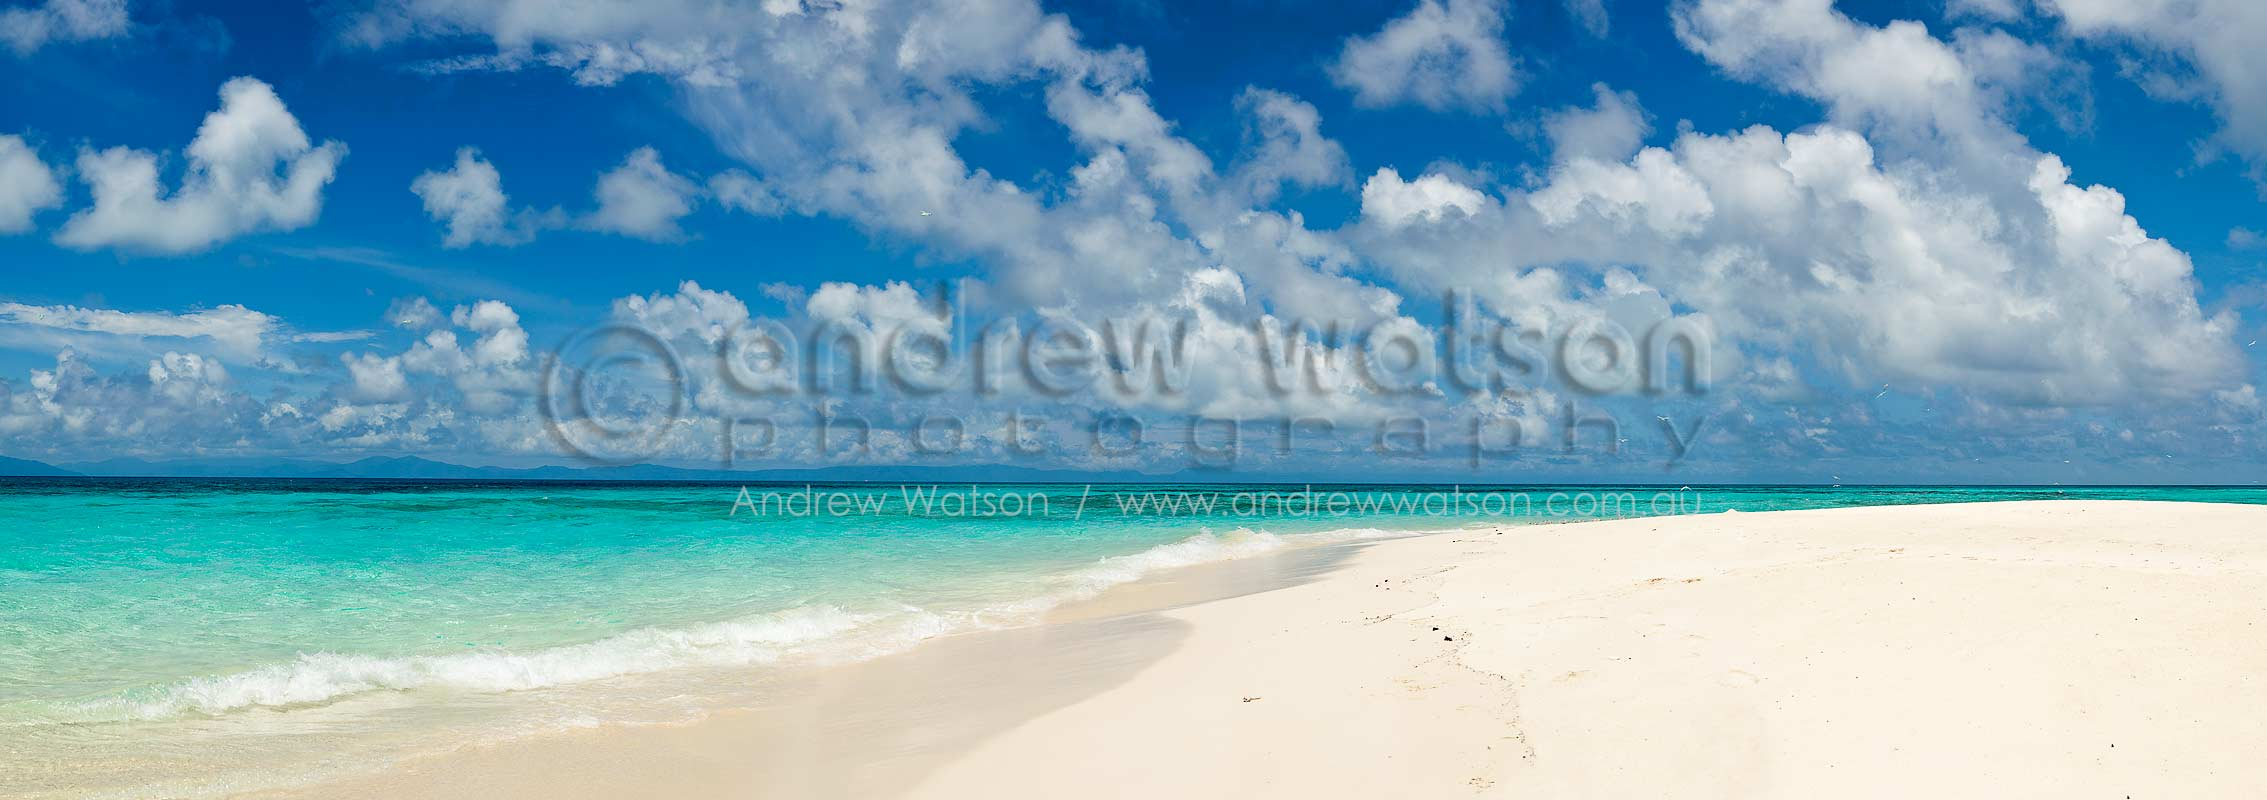 Vlassof Sand Cay in the Great Barrier ReefCairns, North QueenslandImage available for licensing or as a fine-art print... please enquire